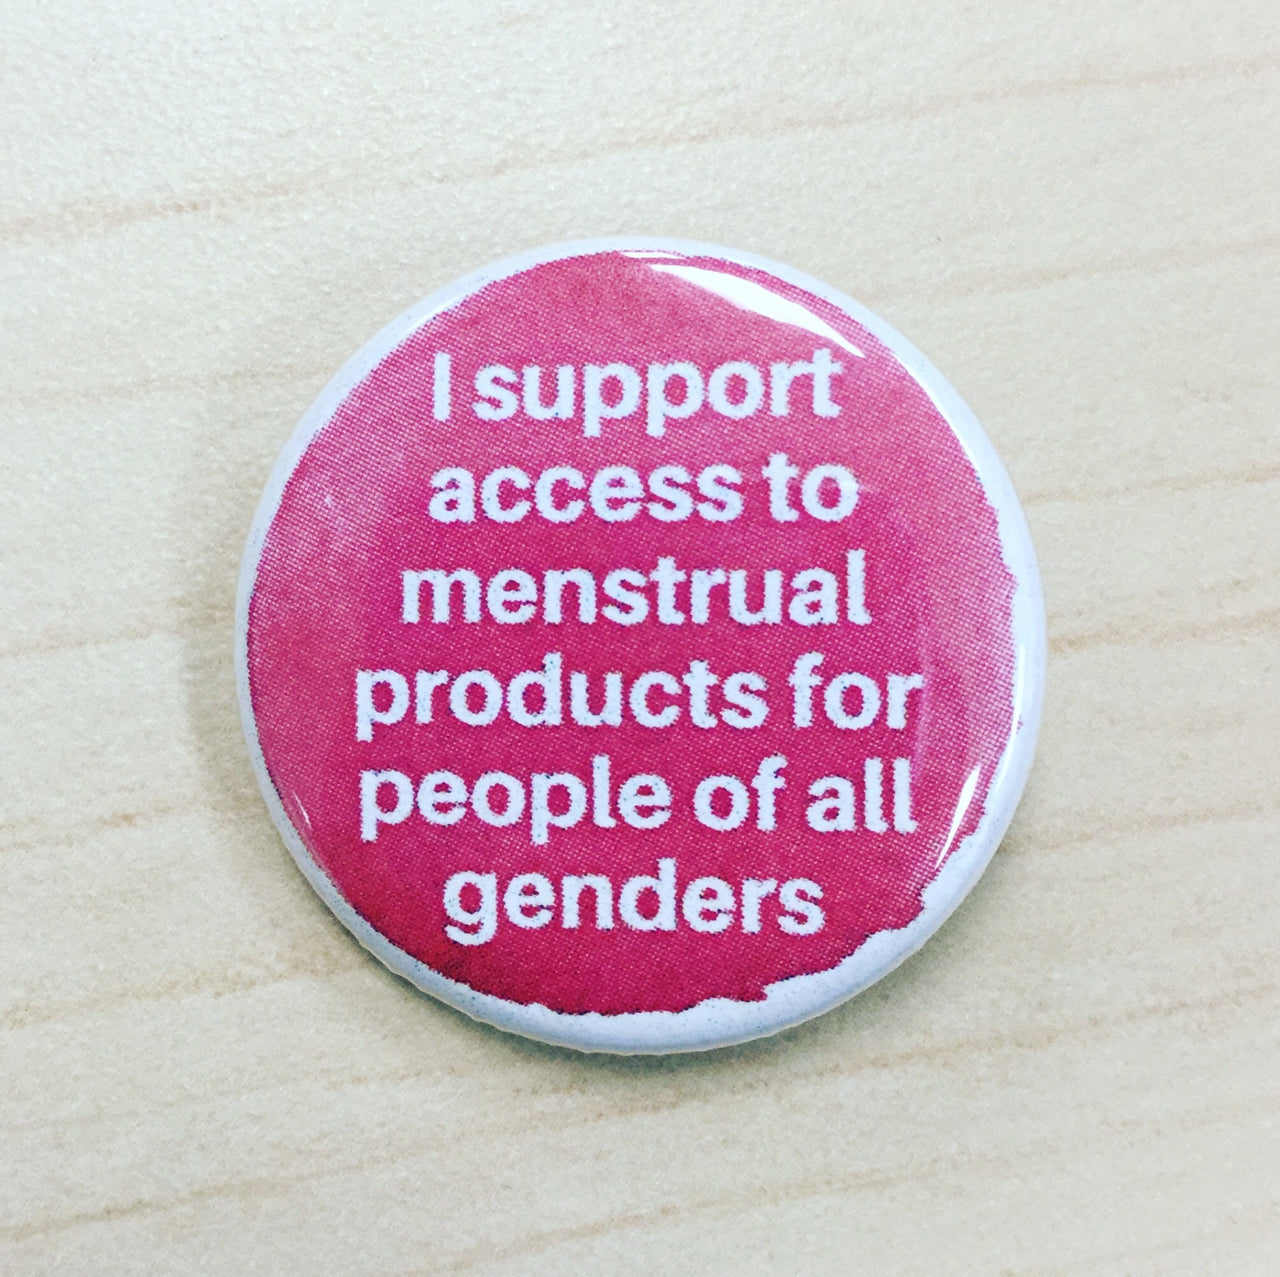 I support access to menstrual products for people of all genders